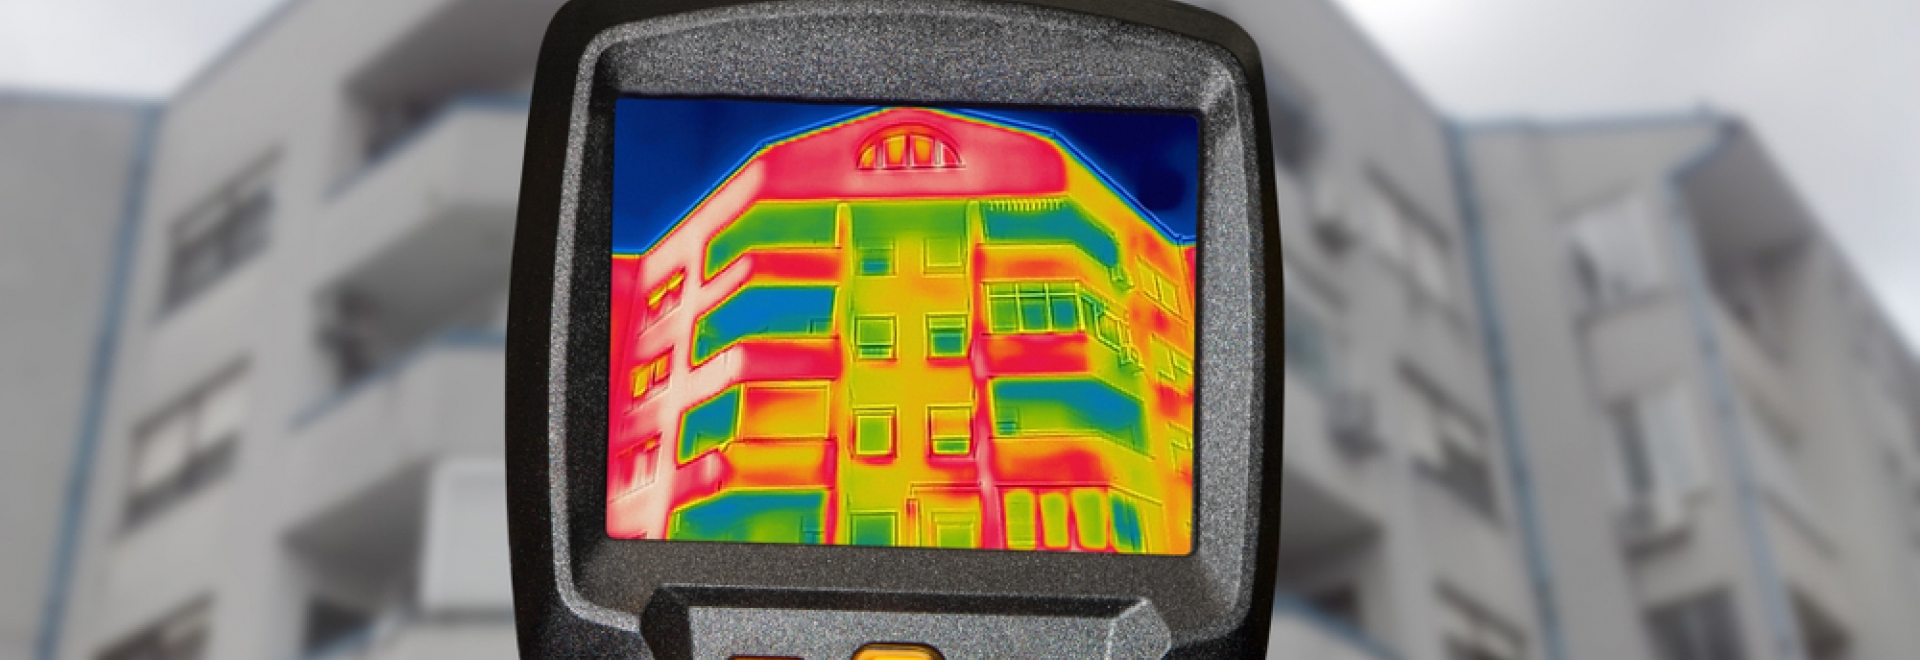 infrared thermal imaging on corporate building energy assessment